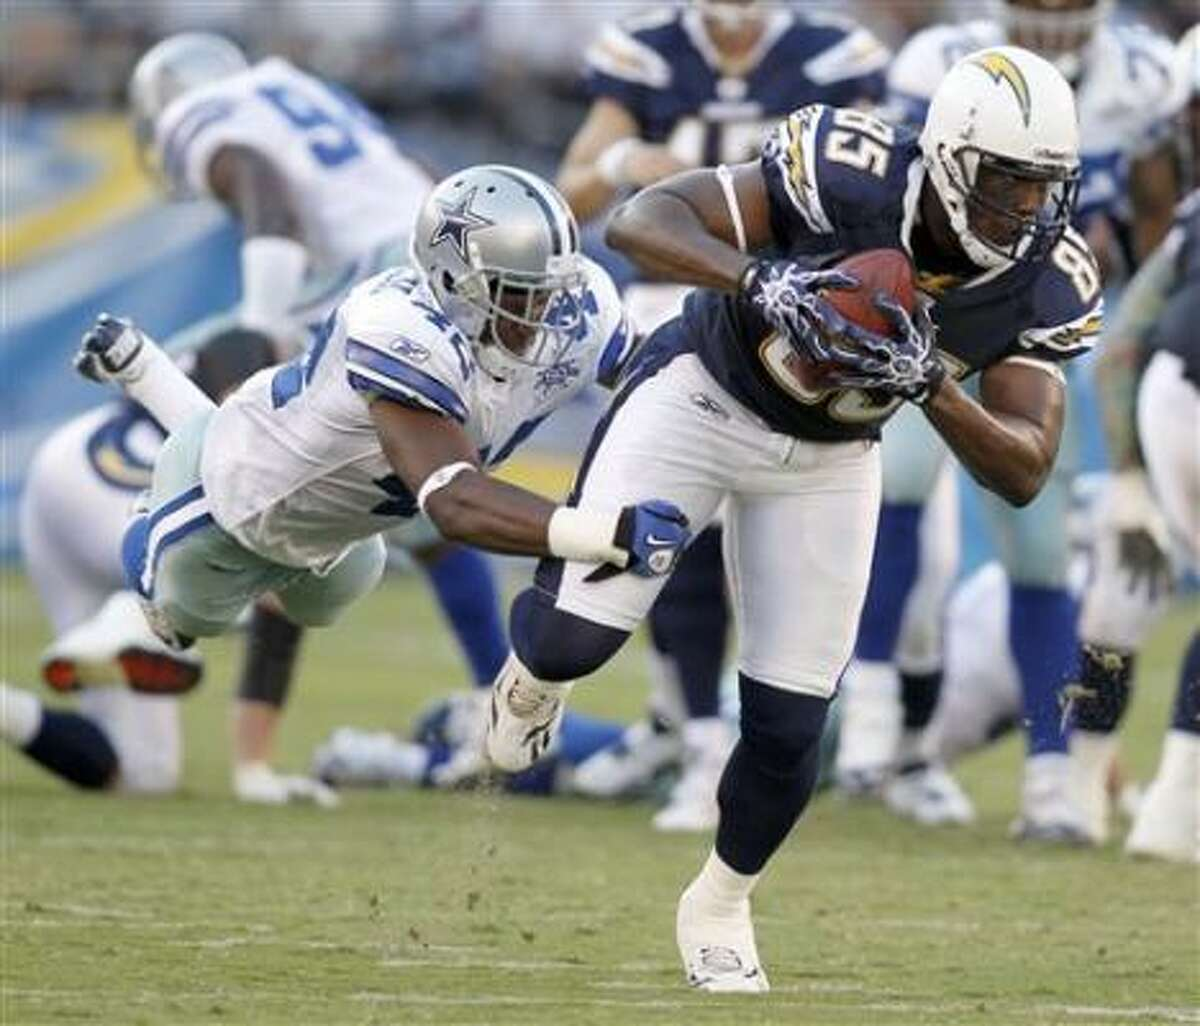 Chargers quarterback Philip Rivers gets sacked by Cowboys linebacker Anthony Spencer.